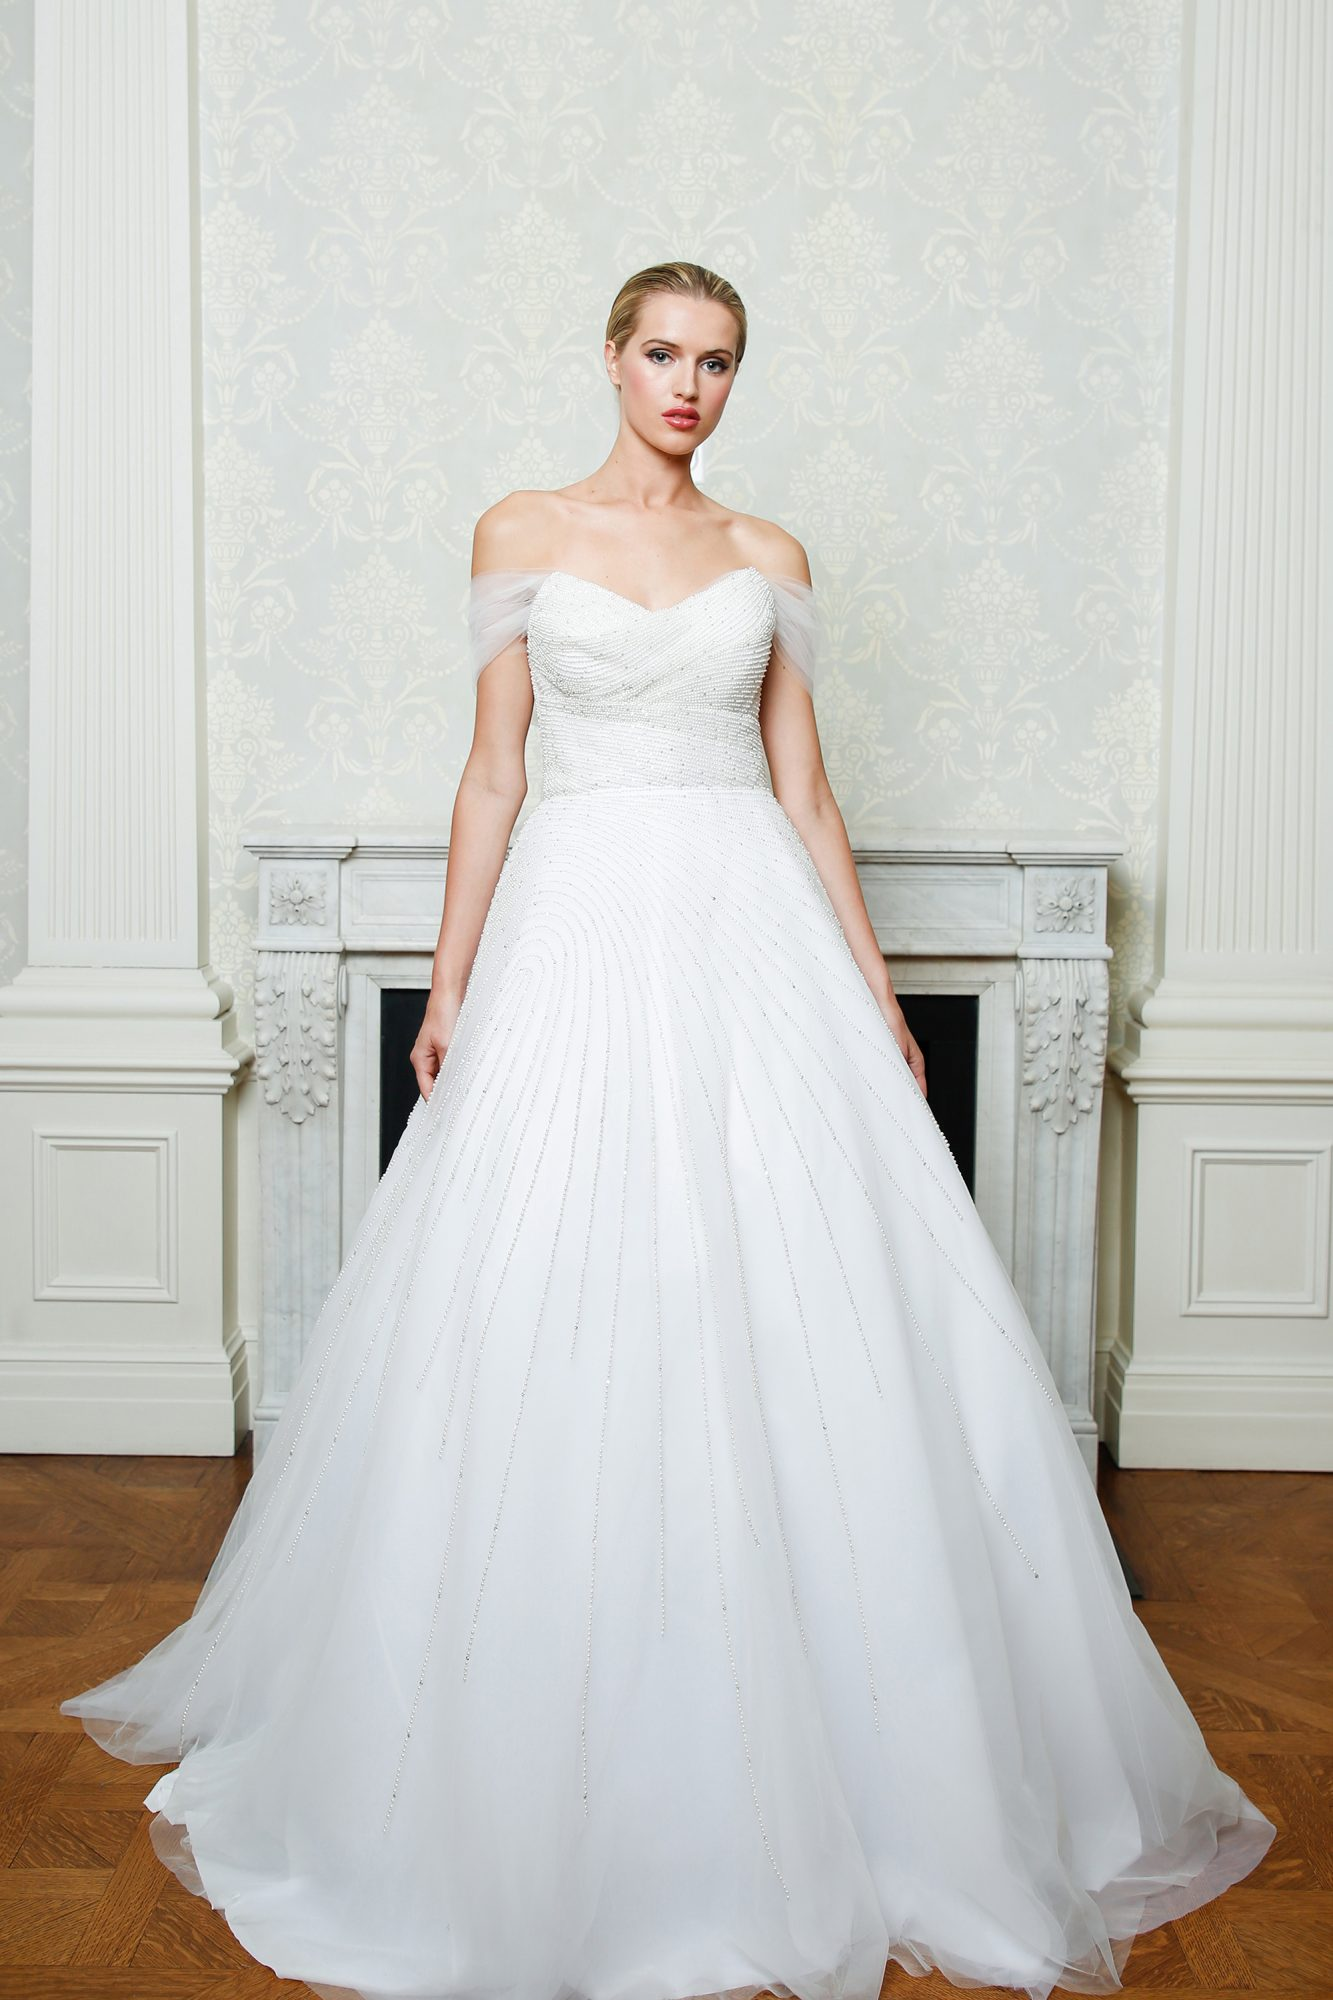 Cristina Ottaviano wedding dress spring 2019 beaded sweetheart neckline ballgown with off the shoulder sleeves